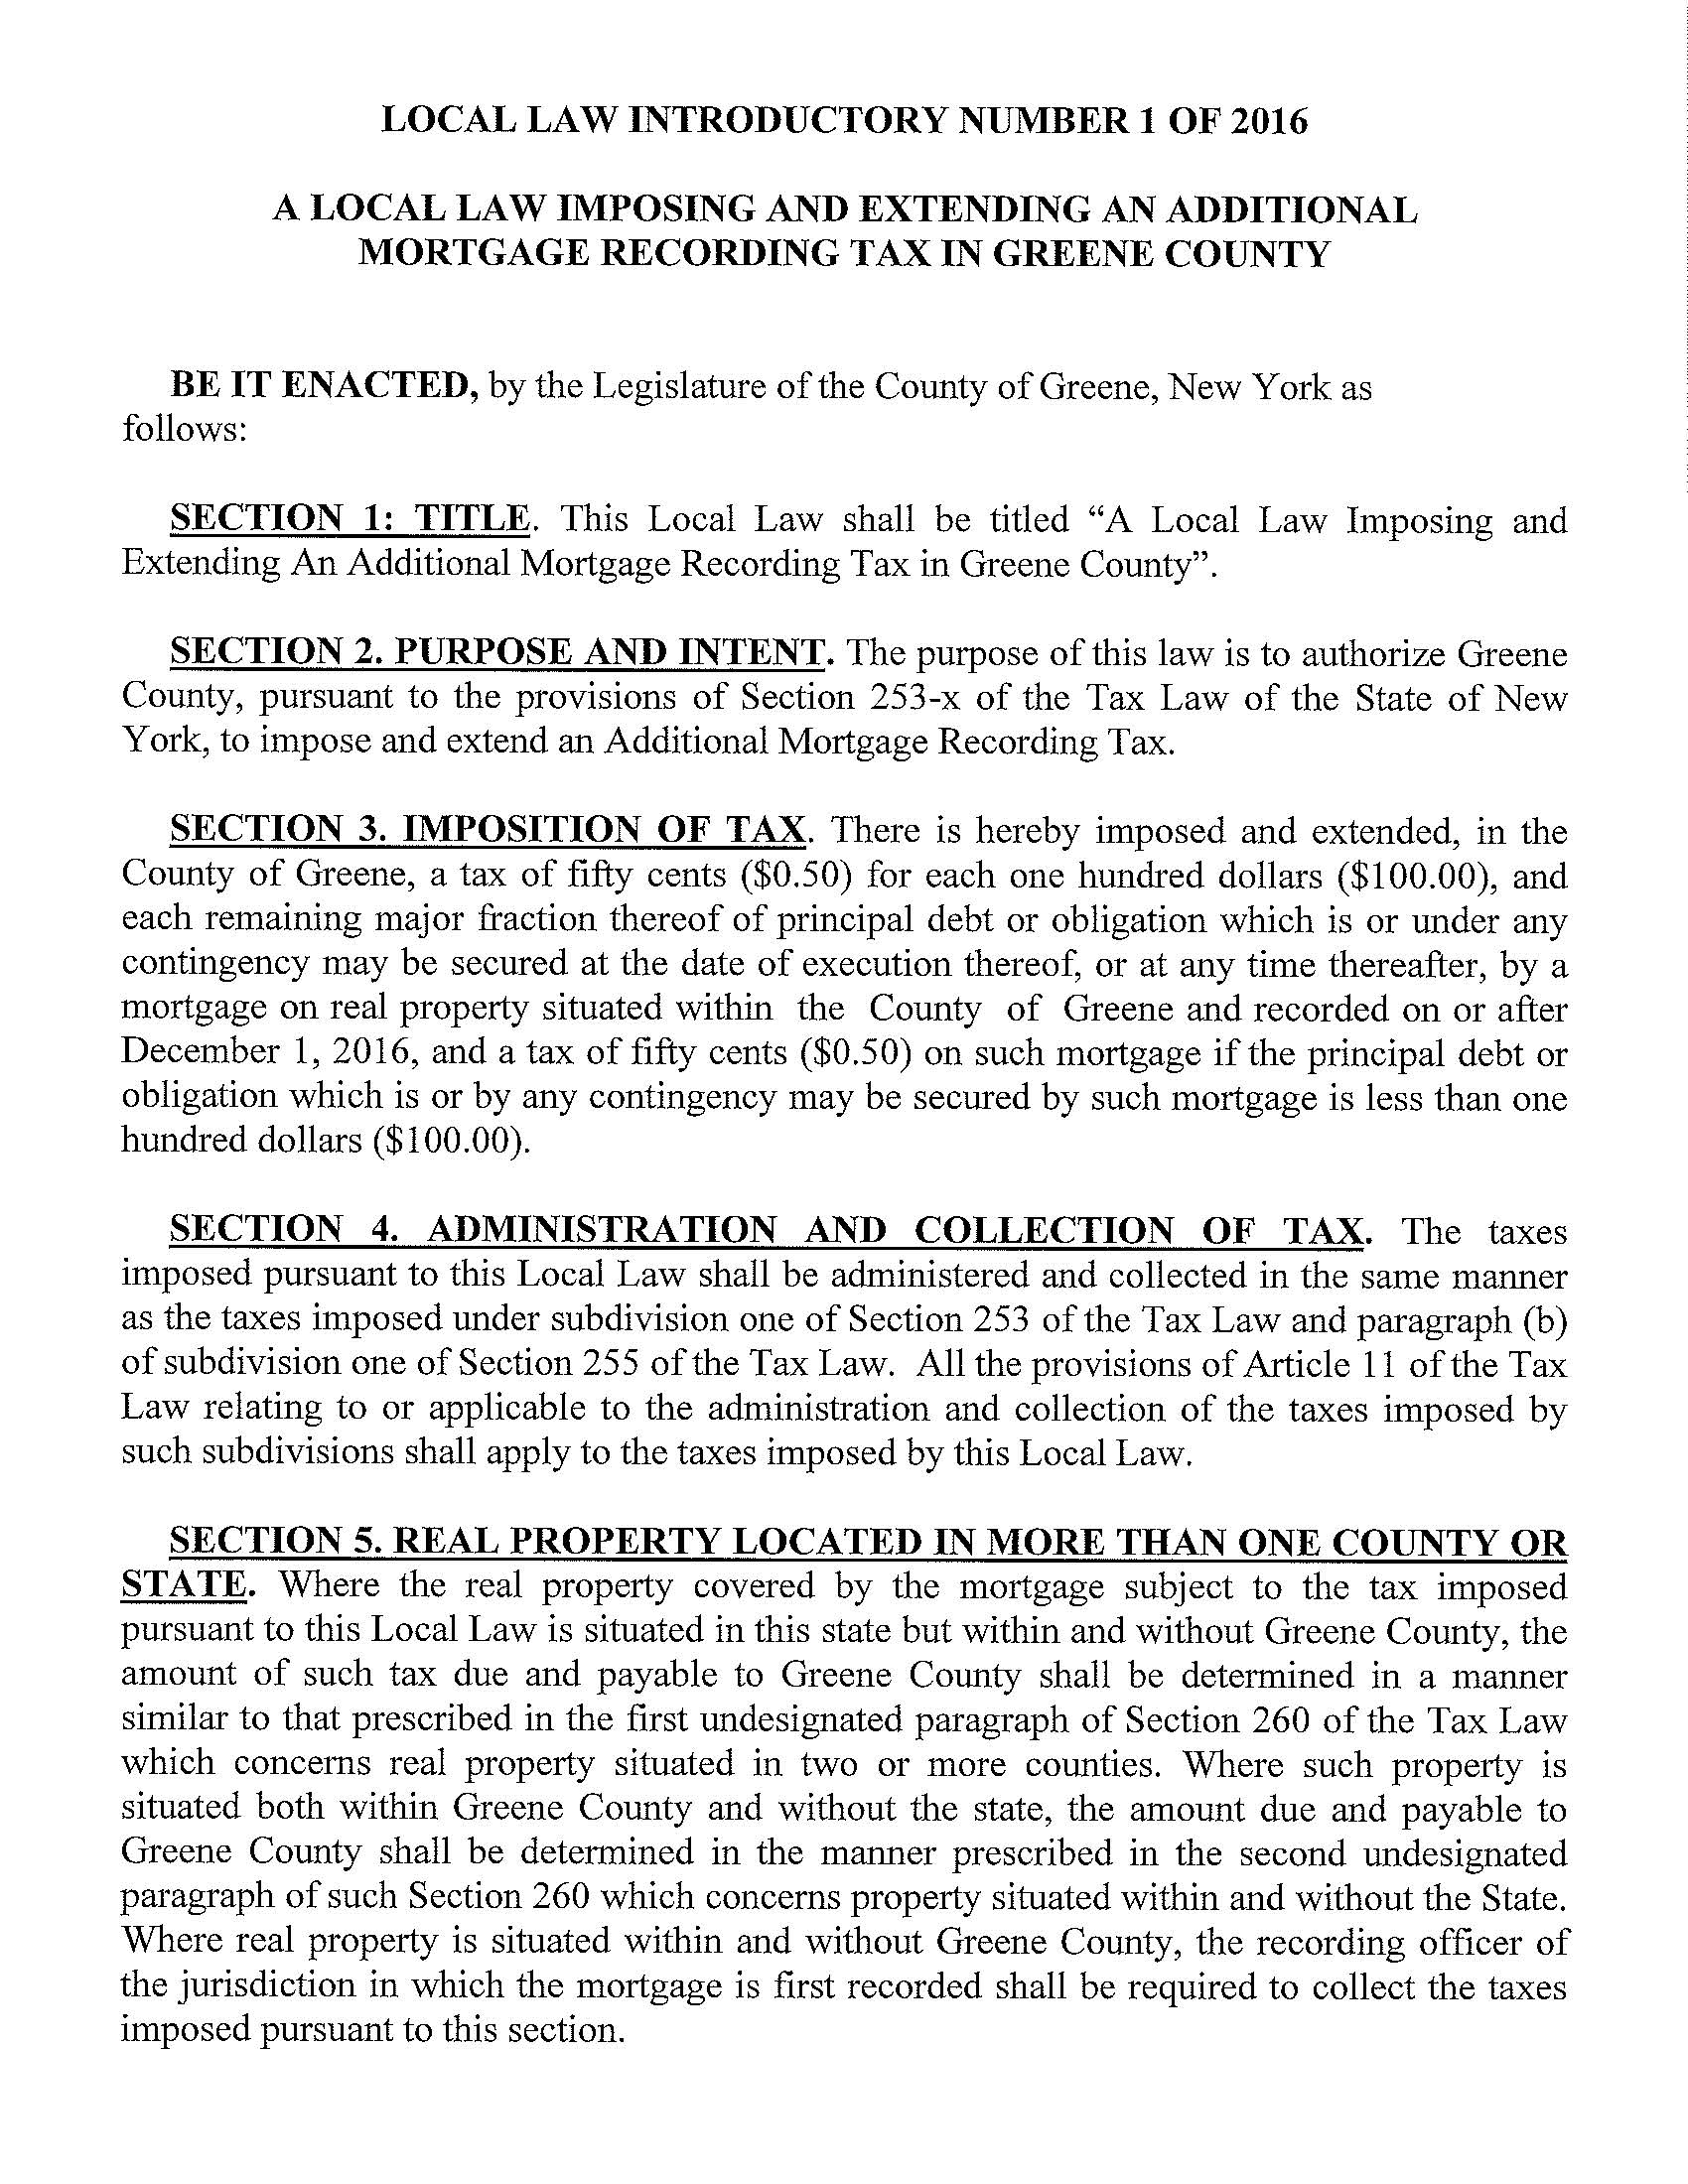 Notice of Public Hearing with Local Law #1 of 2016_Page_2